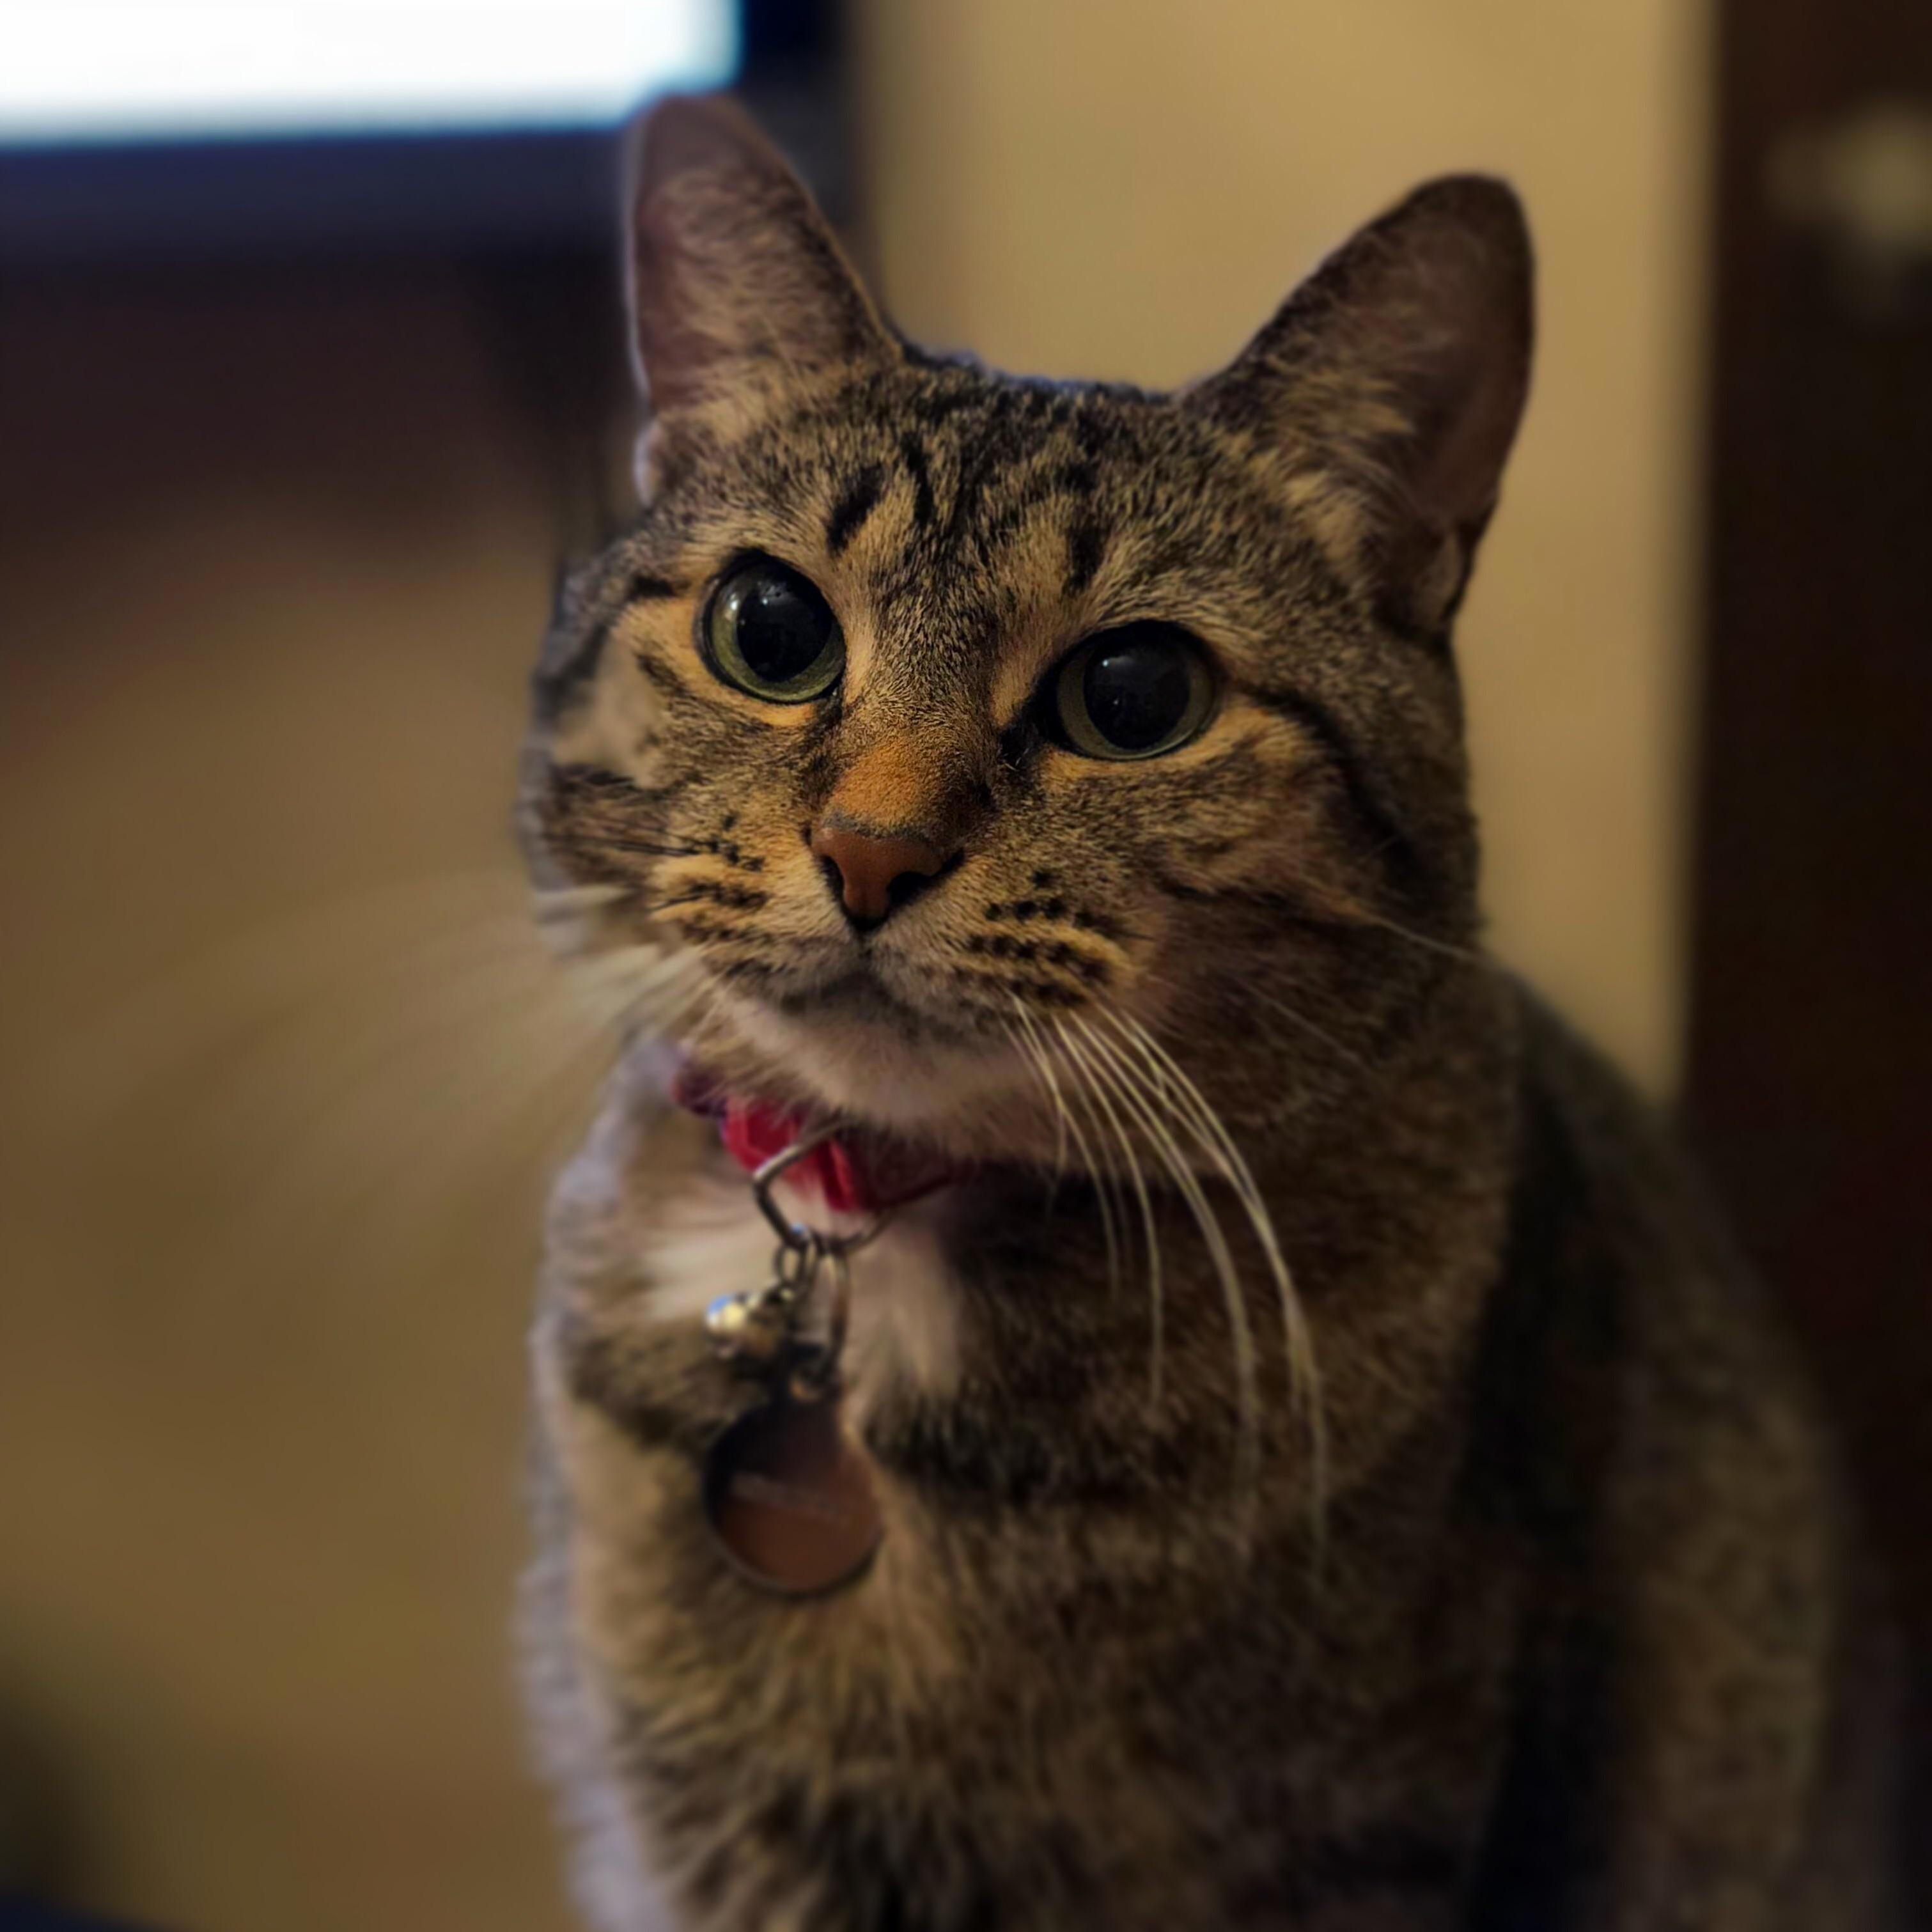 Cat portraits…the main use of my phone